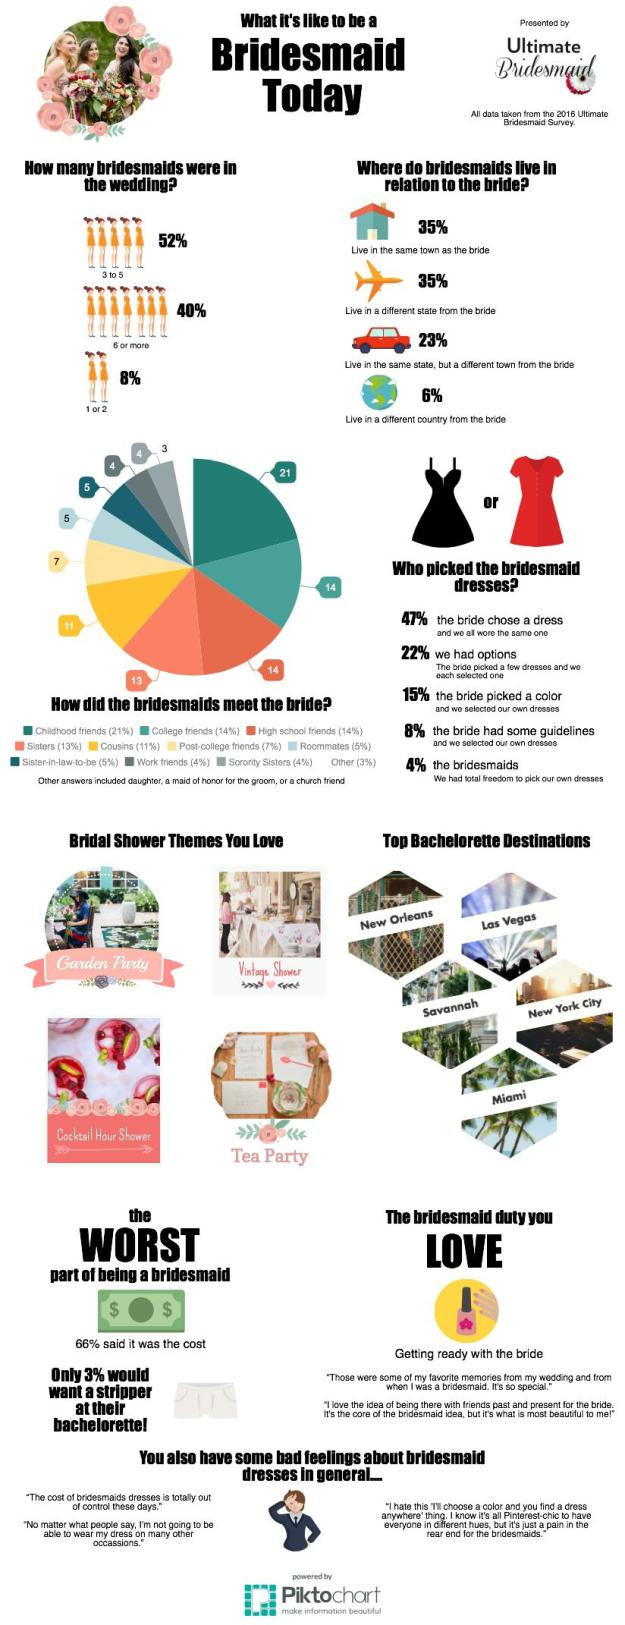 What It's Like to be a Bridesmaid Today: Ultimate Bridesmaid Survey Says